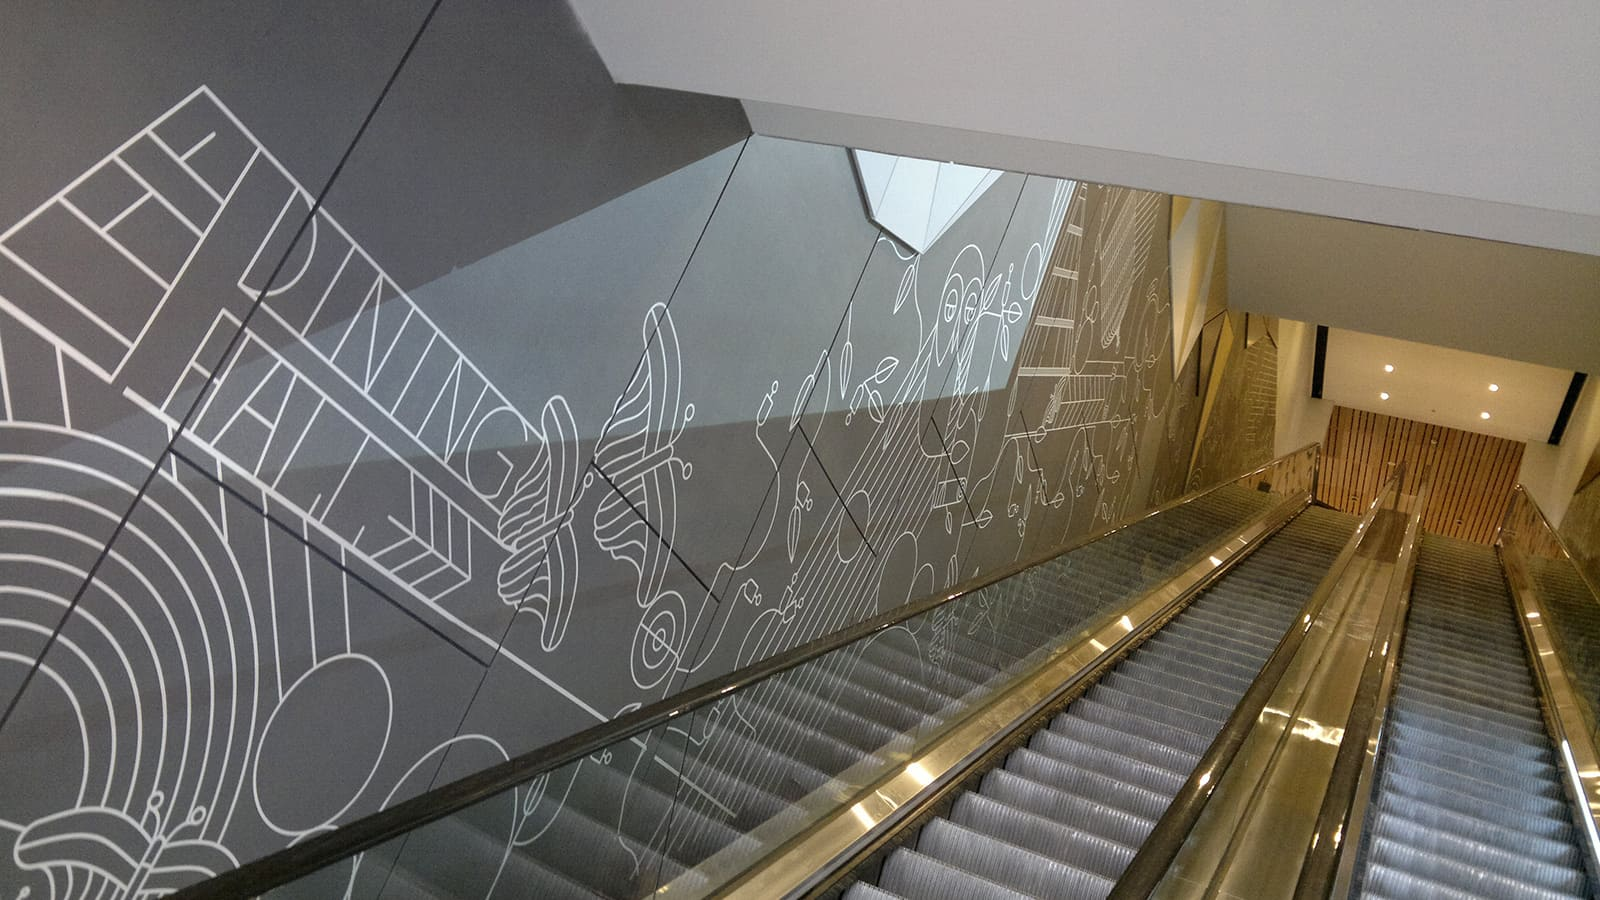 wall-graphics-escalator